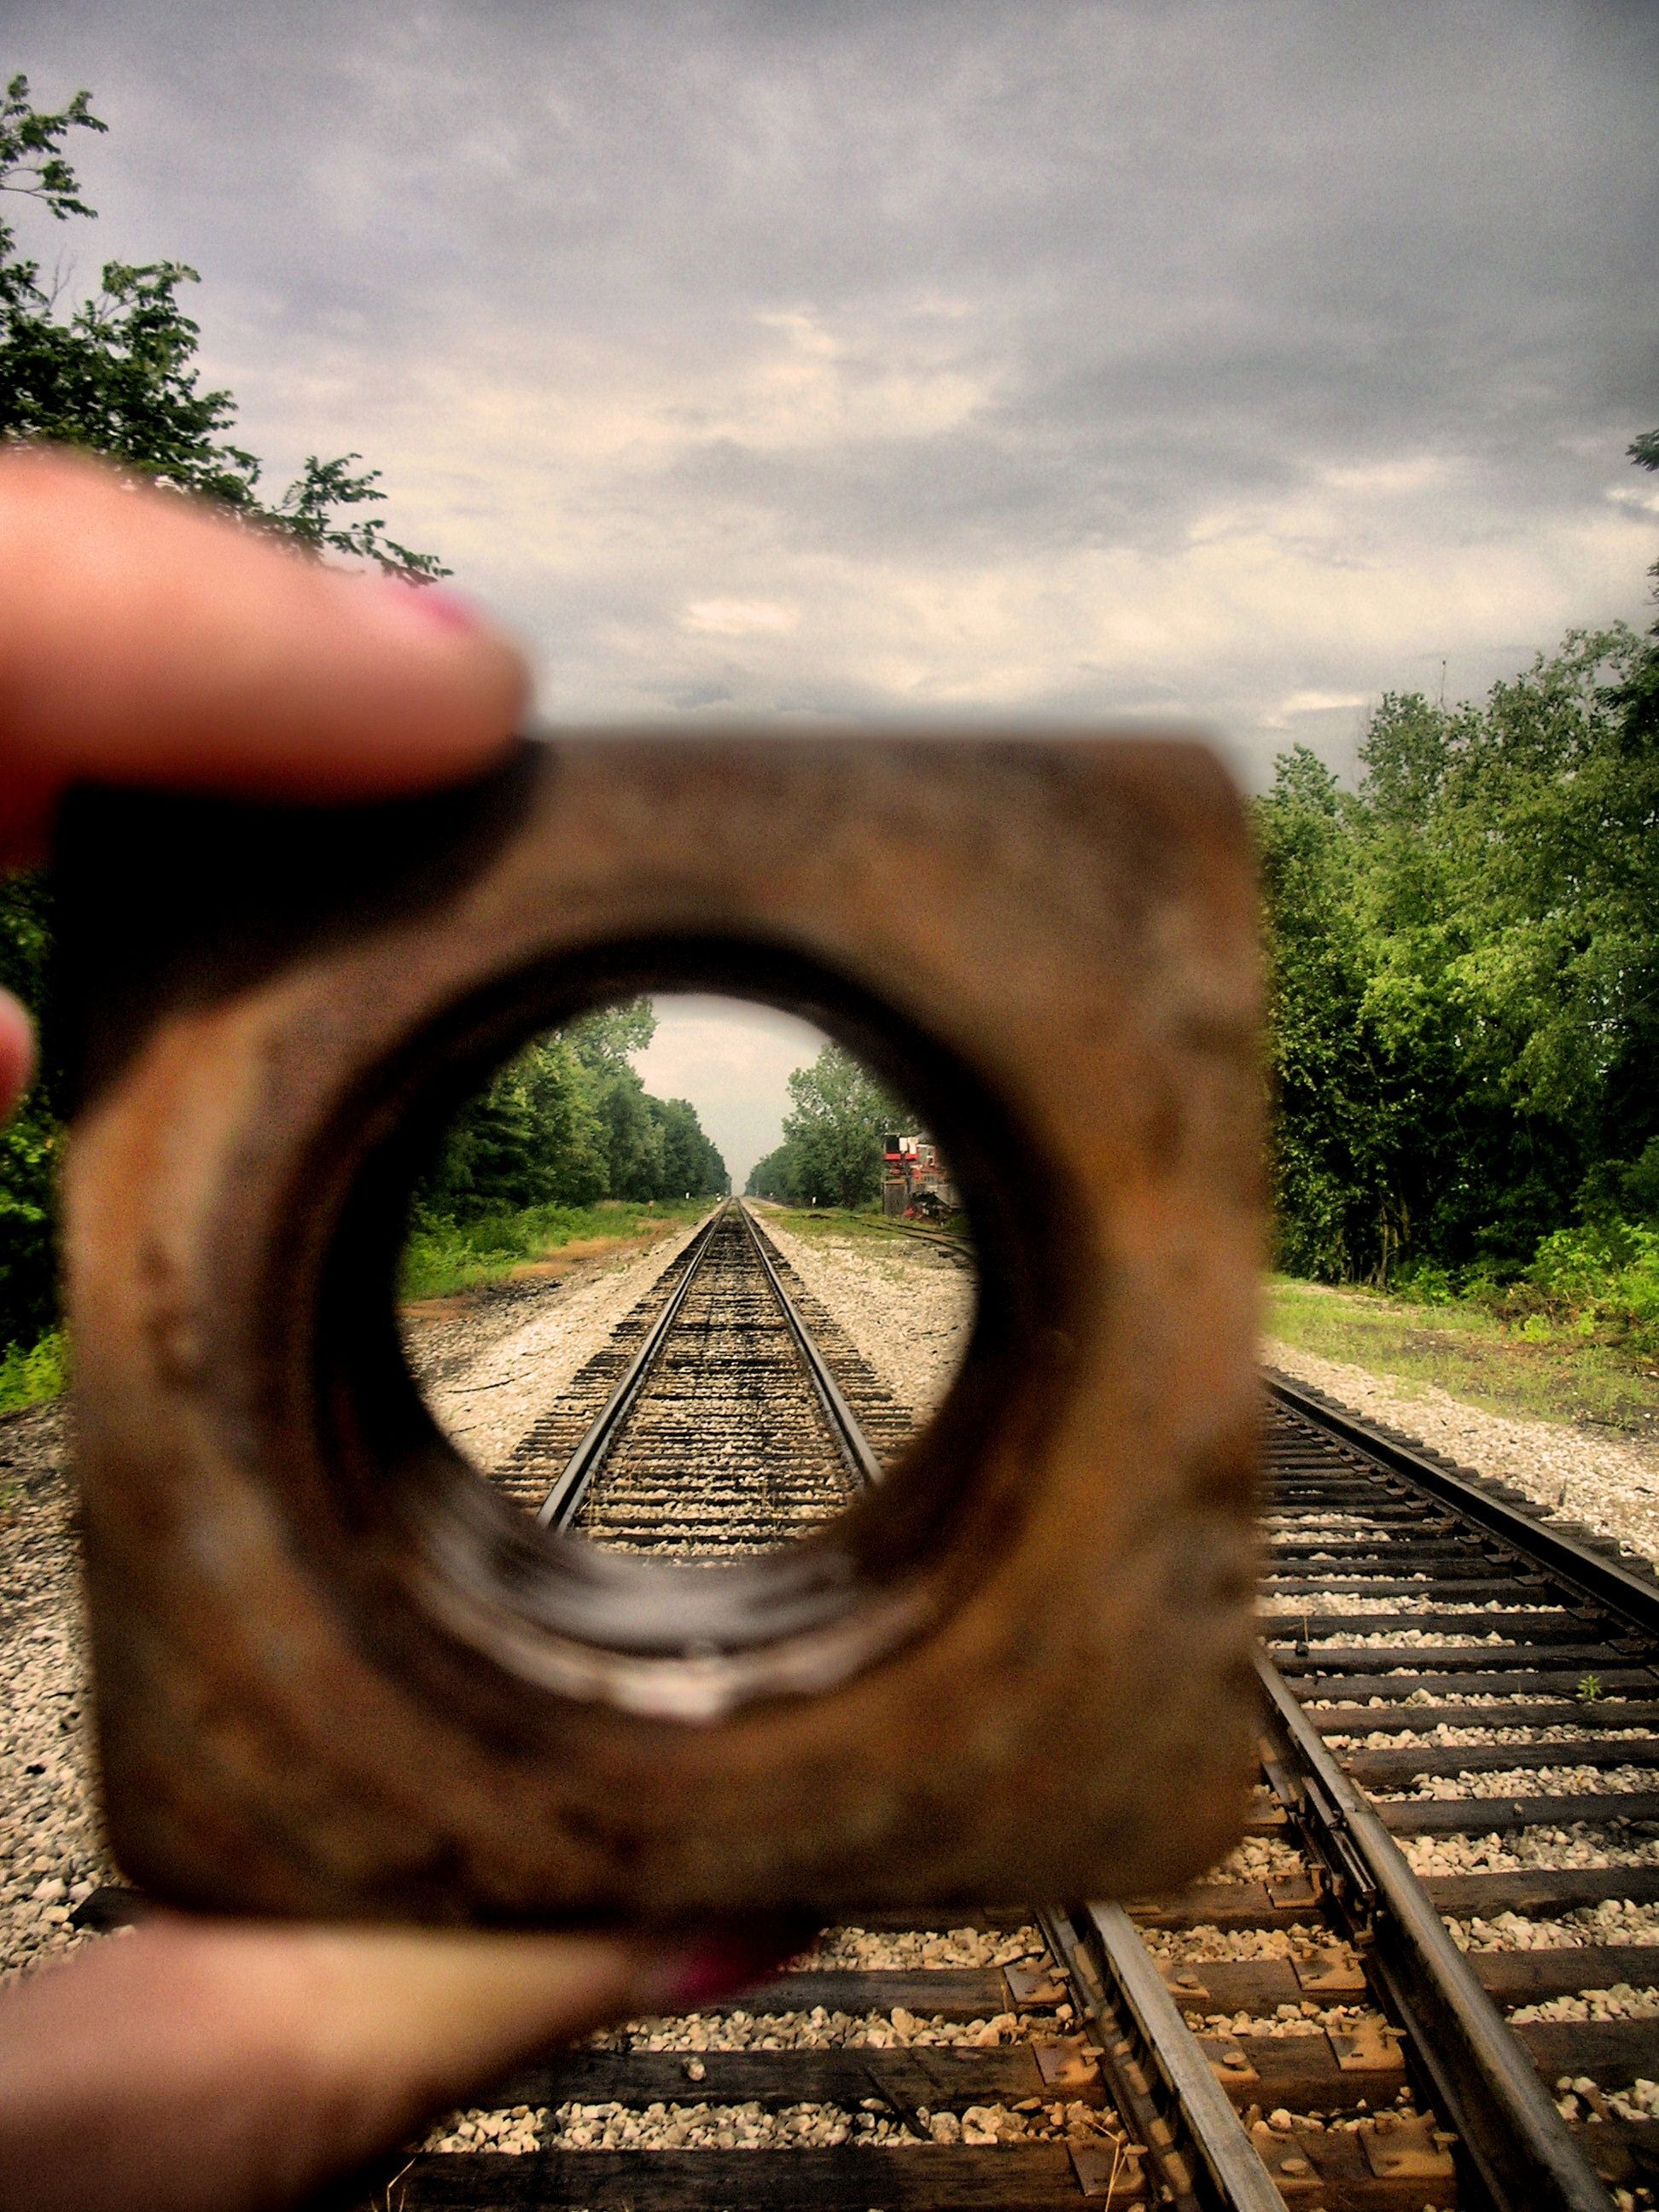 Why is framing important in photography